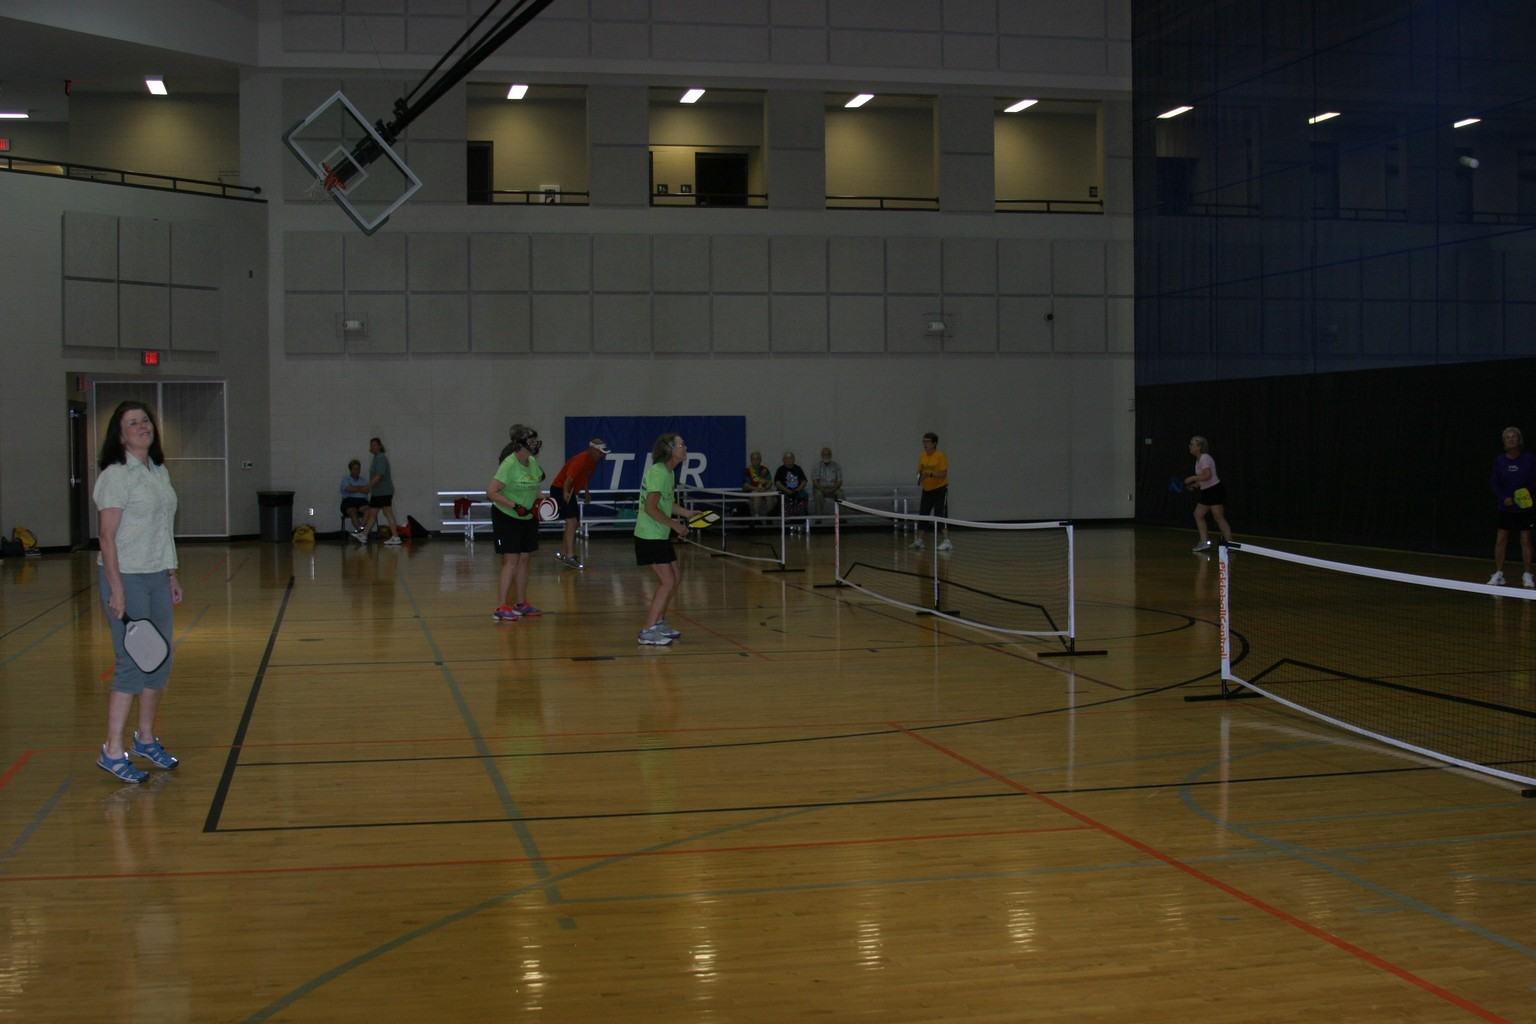 alabama pickleball, trussville pickleball, birmingham pickleball, pickleball, family pickleball, trussville civic center, 2016 Senior Olympics